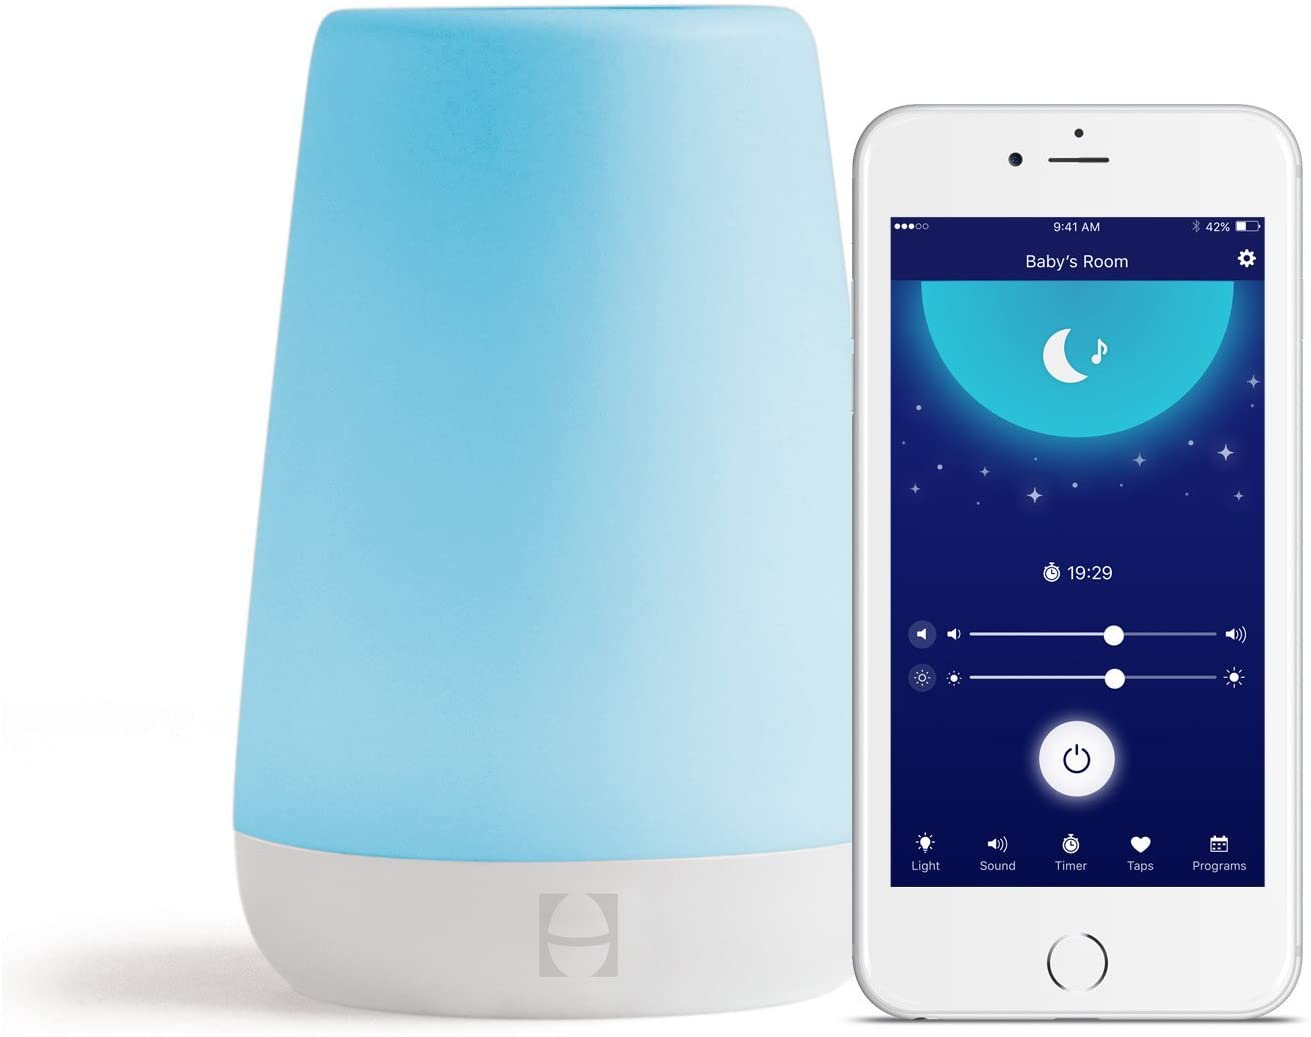 Best Baby Rest Sound Machine, Night Light and Time-to-Rise 2021